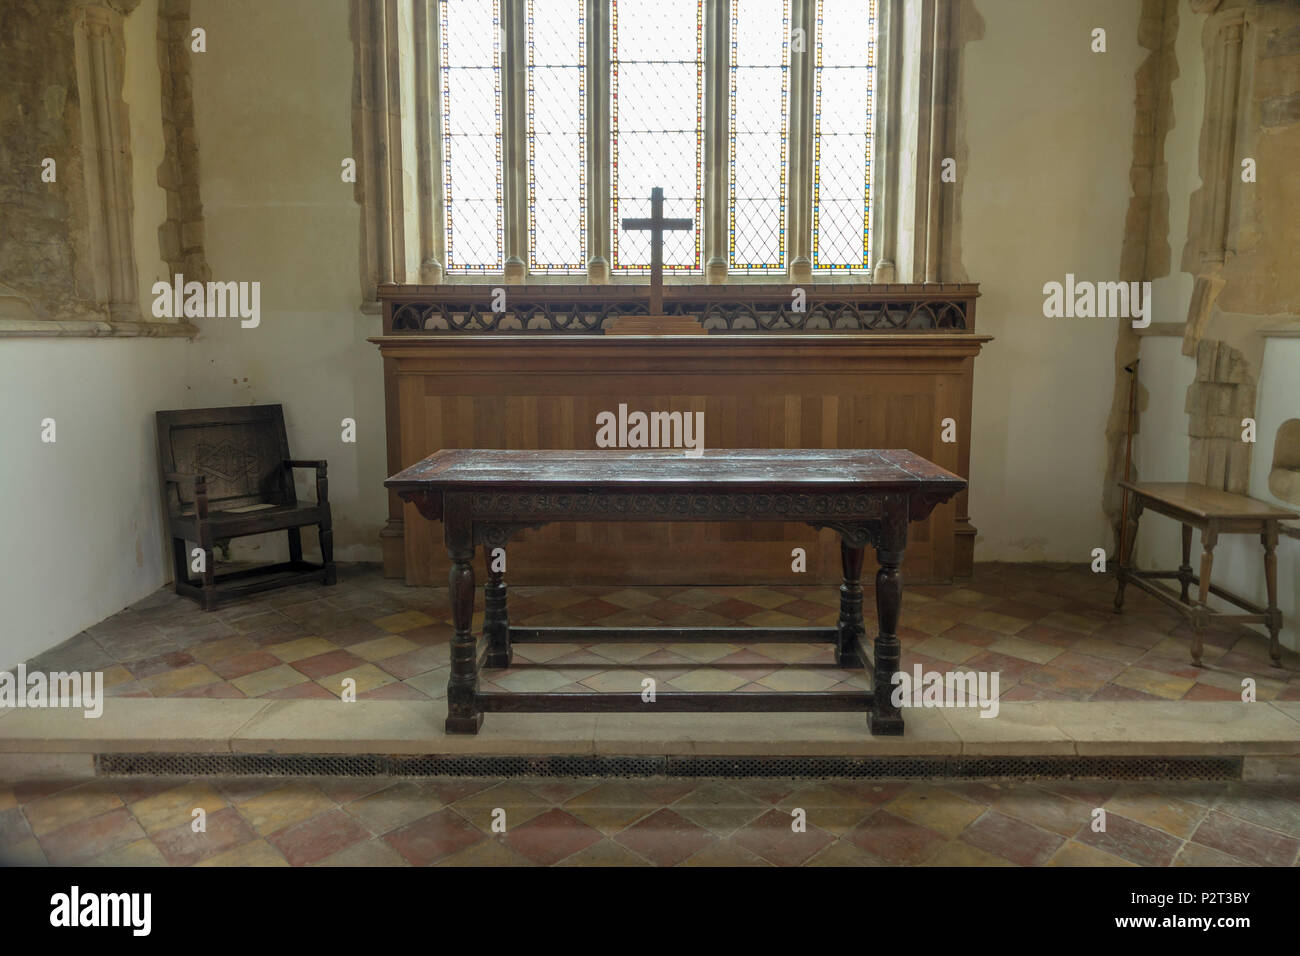 Alter Table High Resolution Stock Photography and Images - Alamy